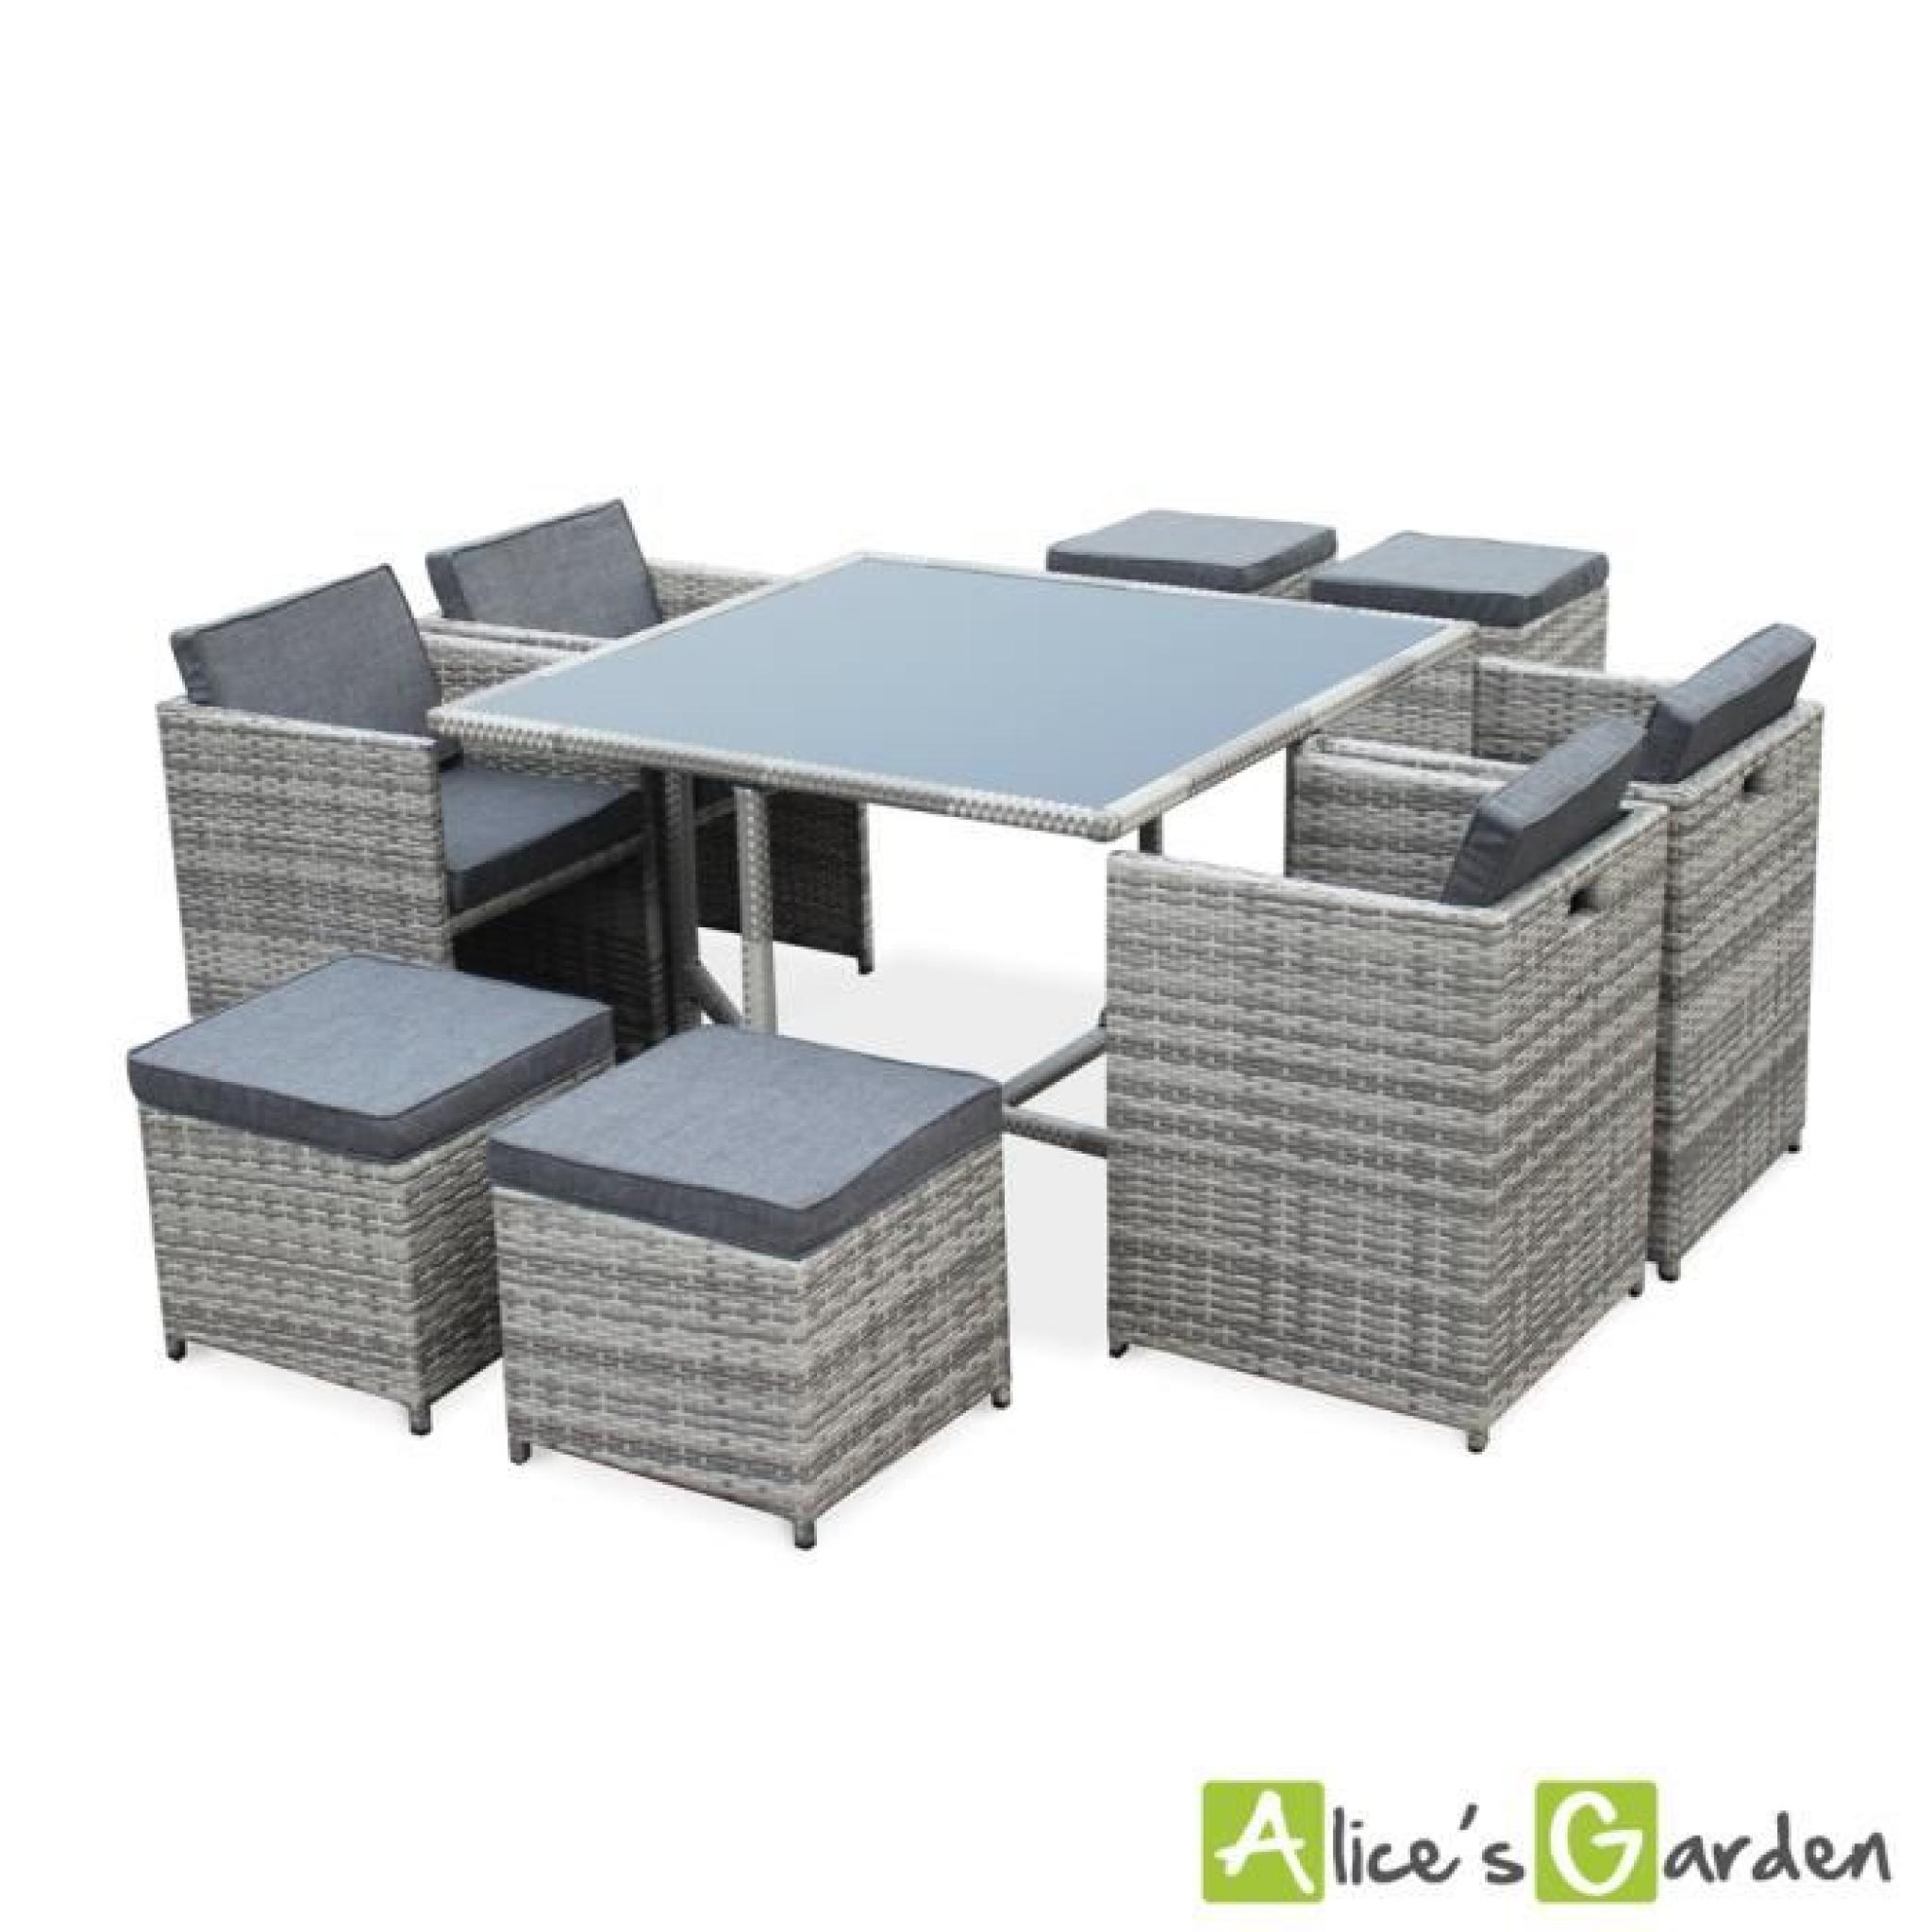 salon de jardin vasto nuances de gris table en r sine tress e 8 12 places fauteuils. Black Bedroom Furniture Sets. Home Design Ideas